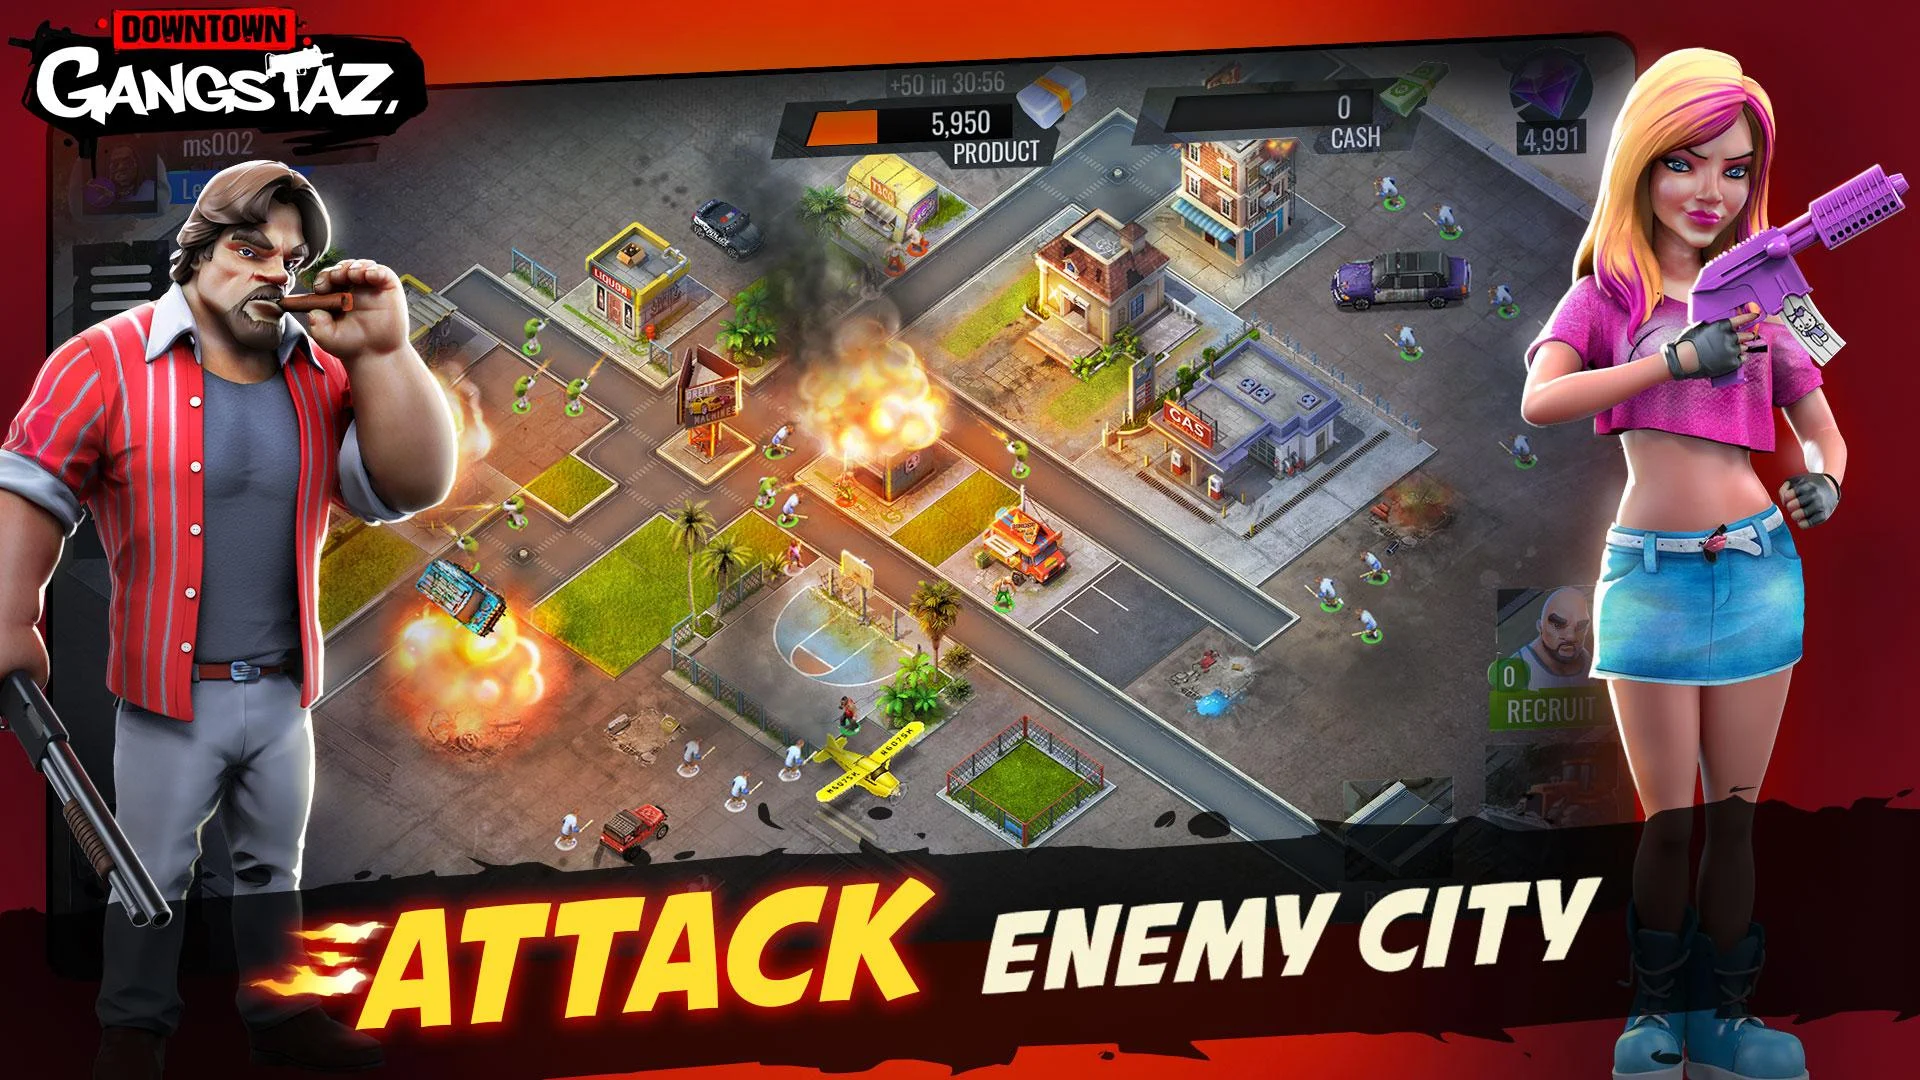 Downtown Gangstaz pour Android